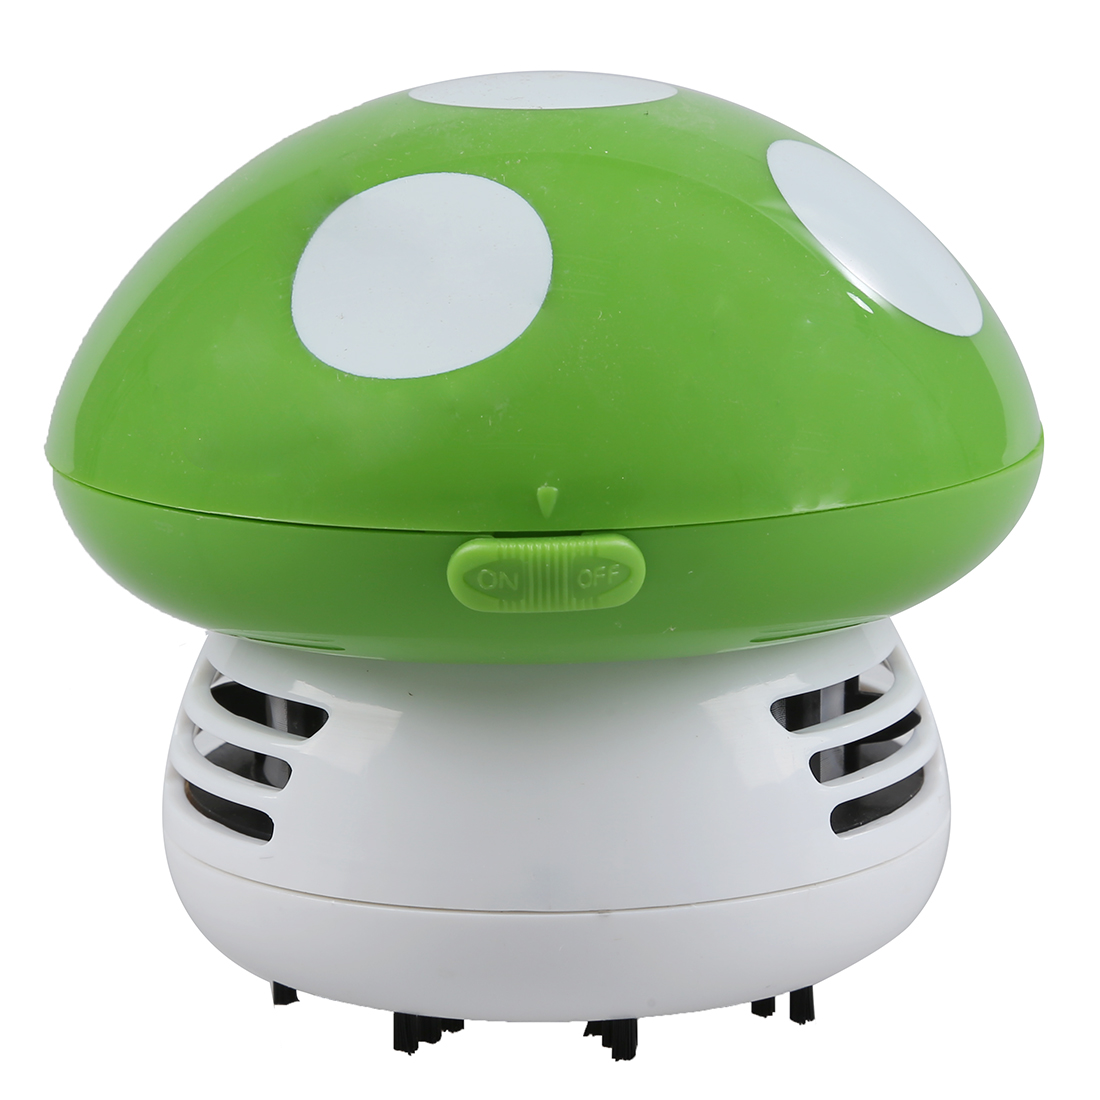 New Home Handheld Mushroom Shaped Mini Vacuum Cleaner Car Laptop keyboard Desktop Dust cleaner-green пазлы ravensburger пазл маленькие хаски xxl 200 элементов